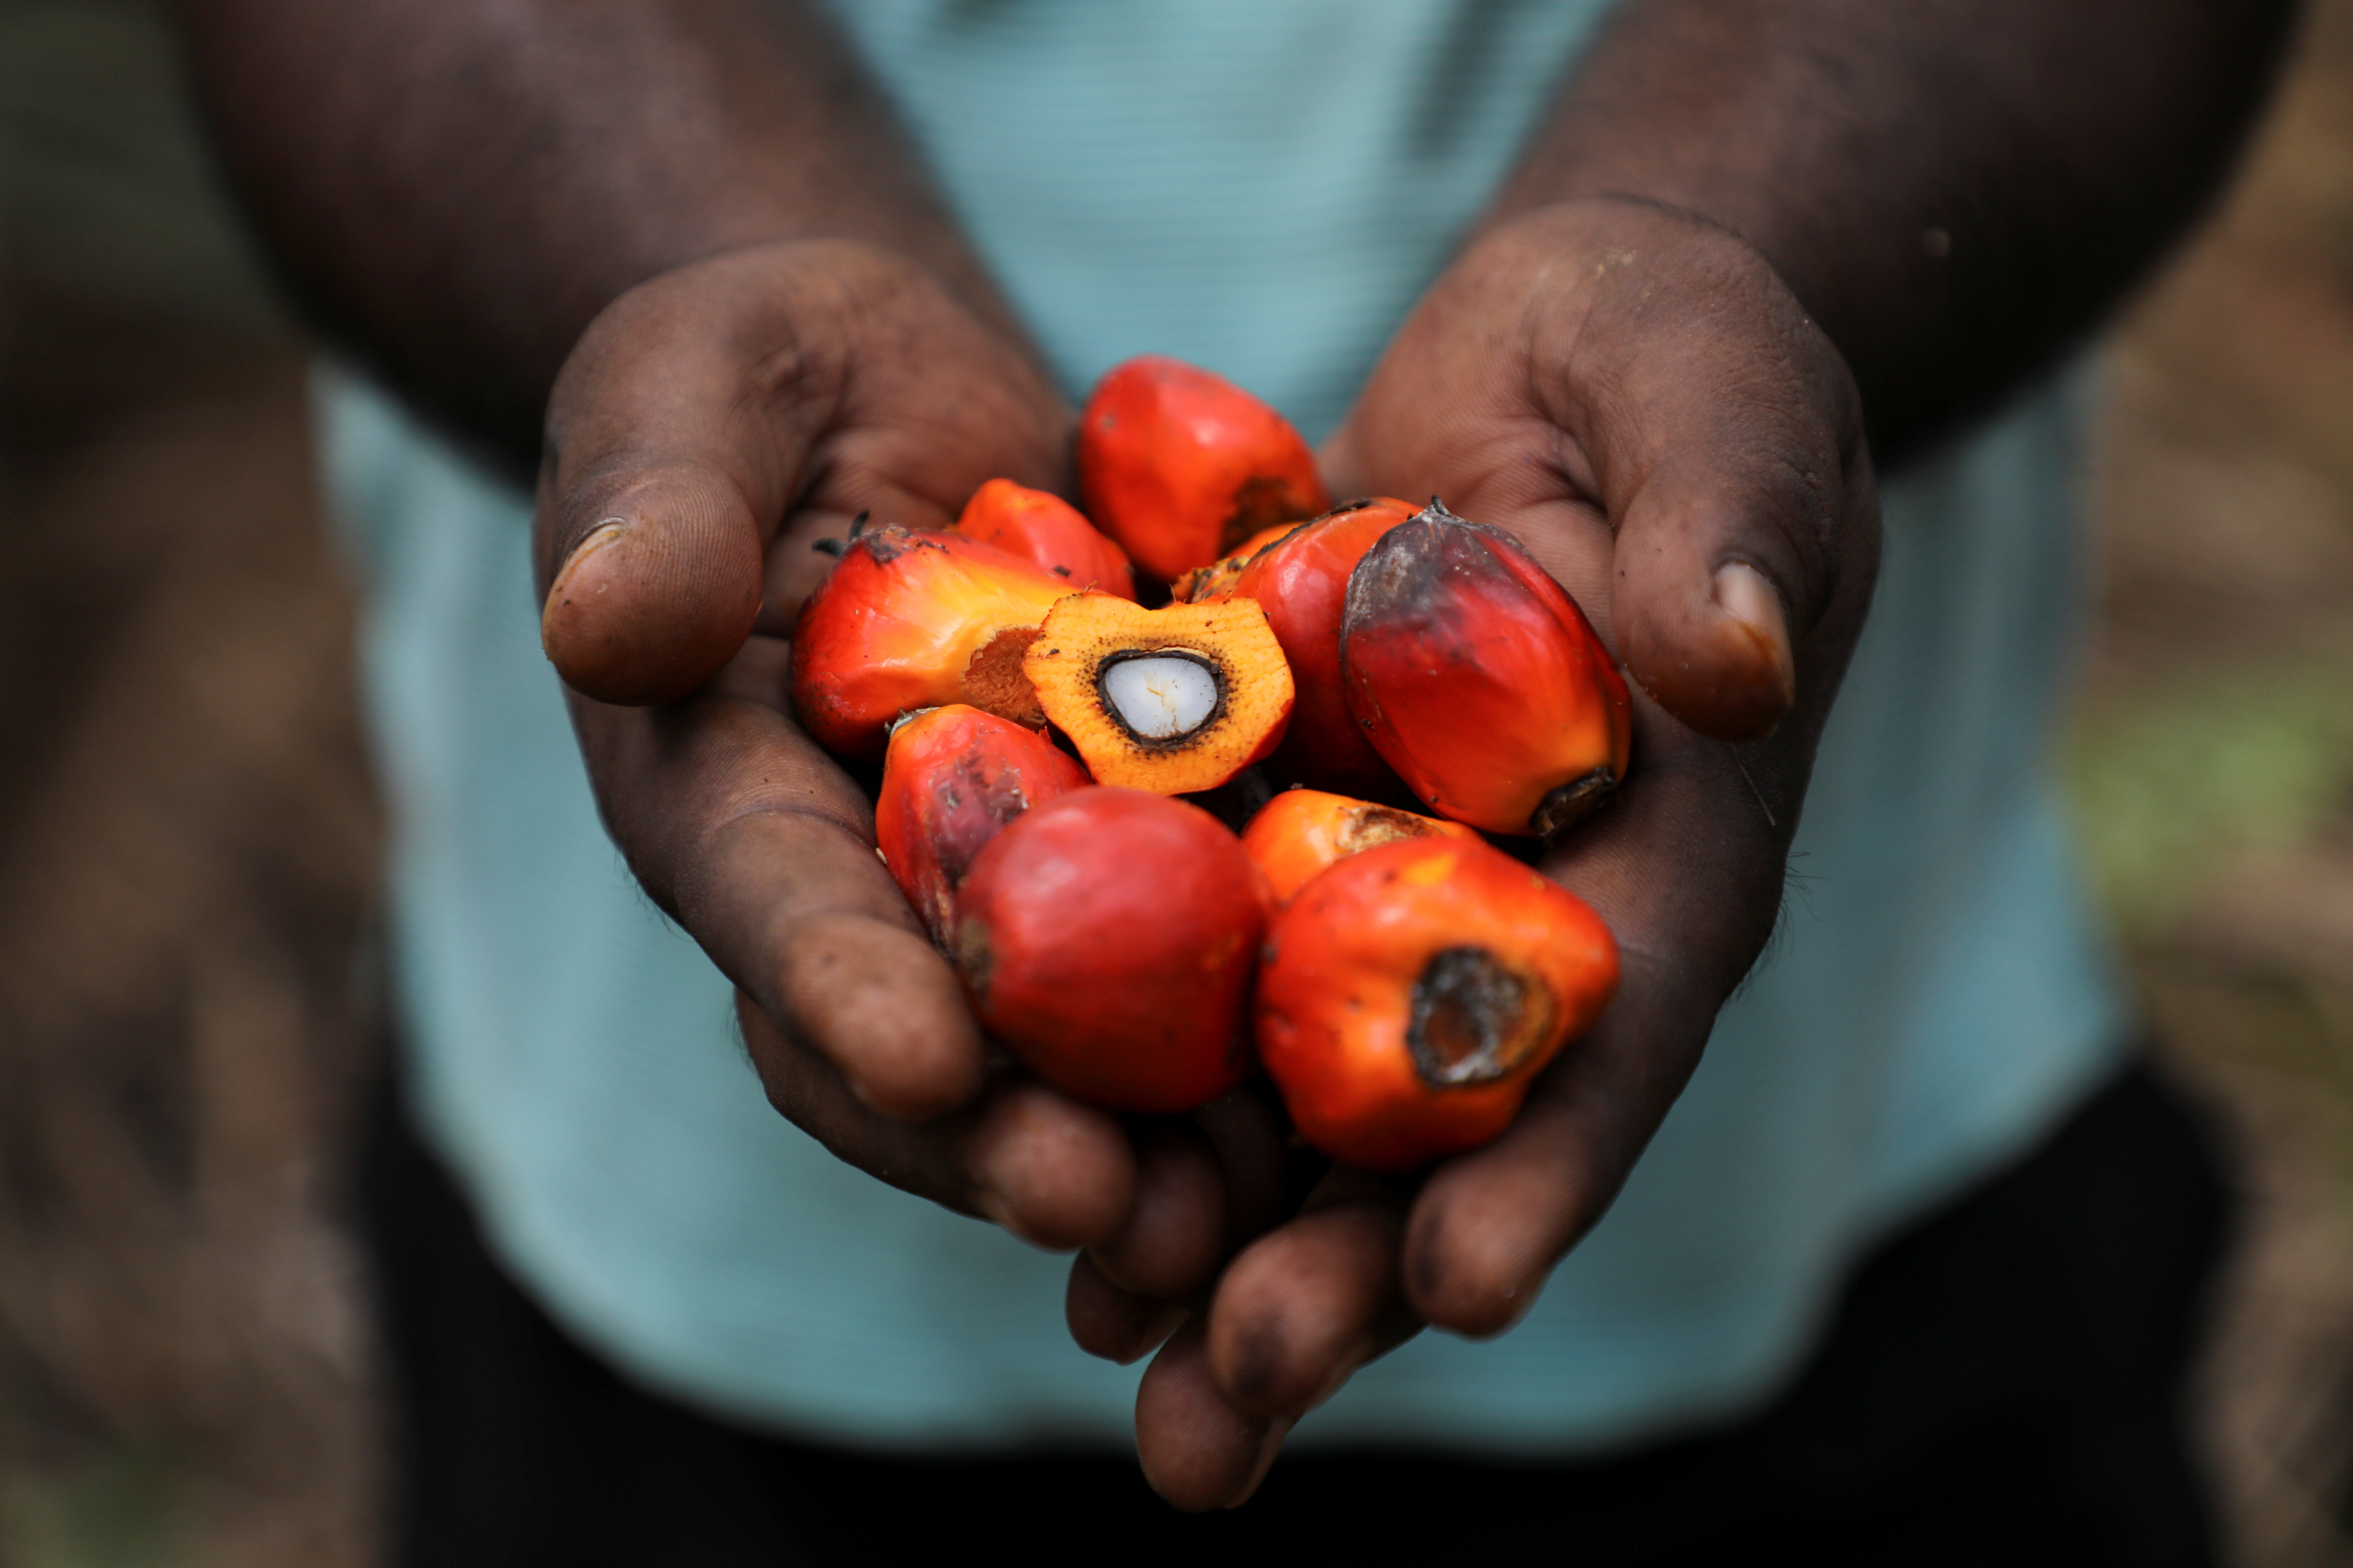 A worker holds palm oil fruits while posing for a picture at an oil palm plantation in Slim River, Malaysia August 12, 2021. Picture taken August 12, 2021. REUTERS/Lim Huey Teng/Files